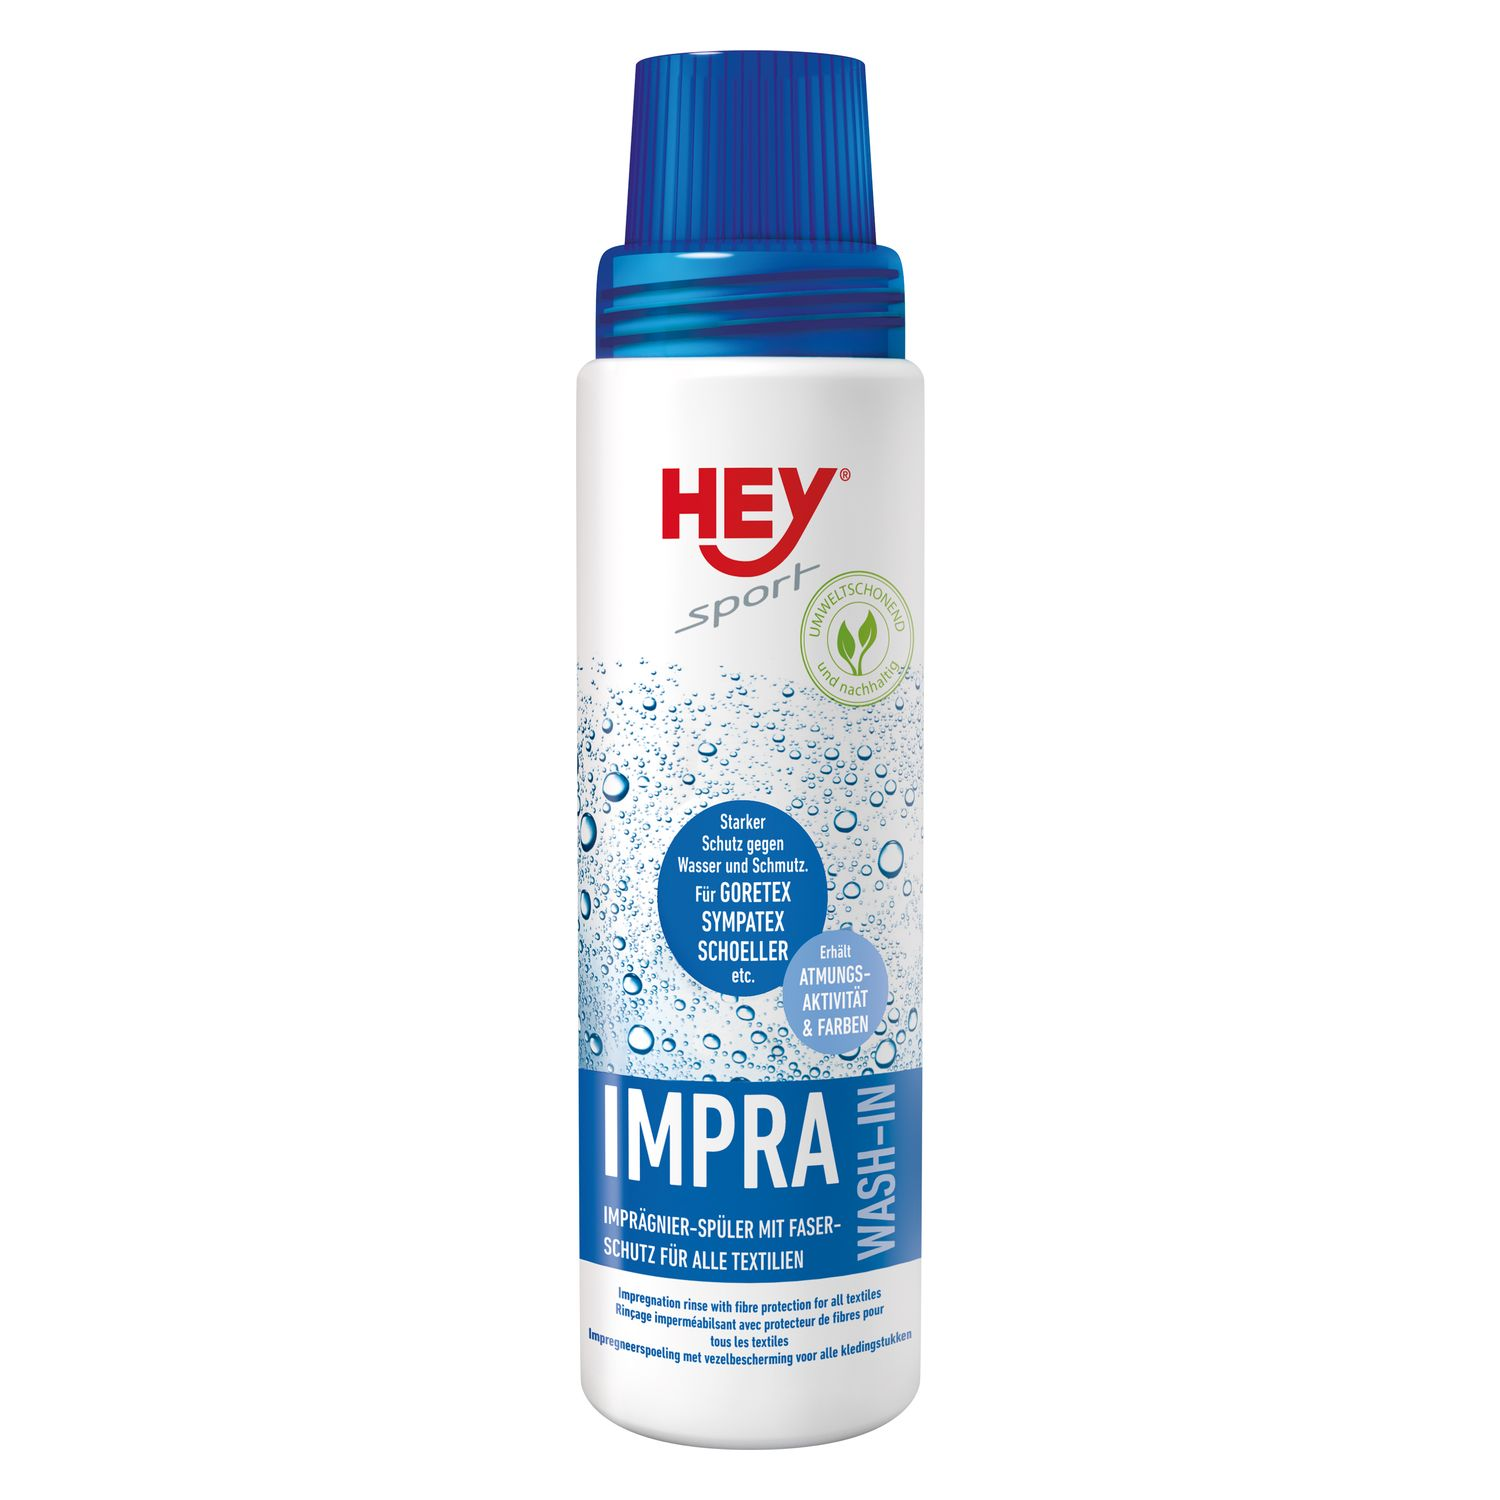 HEY sport Impra Wash-in